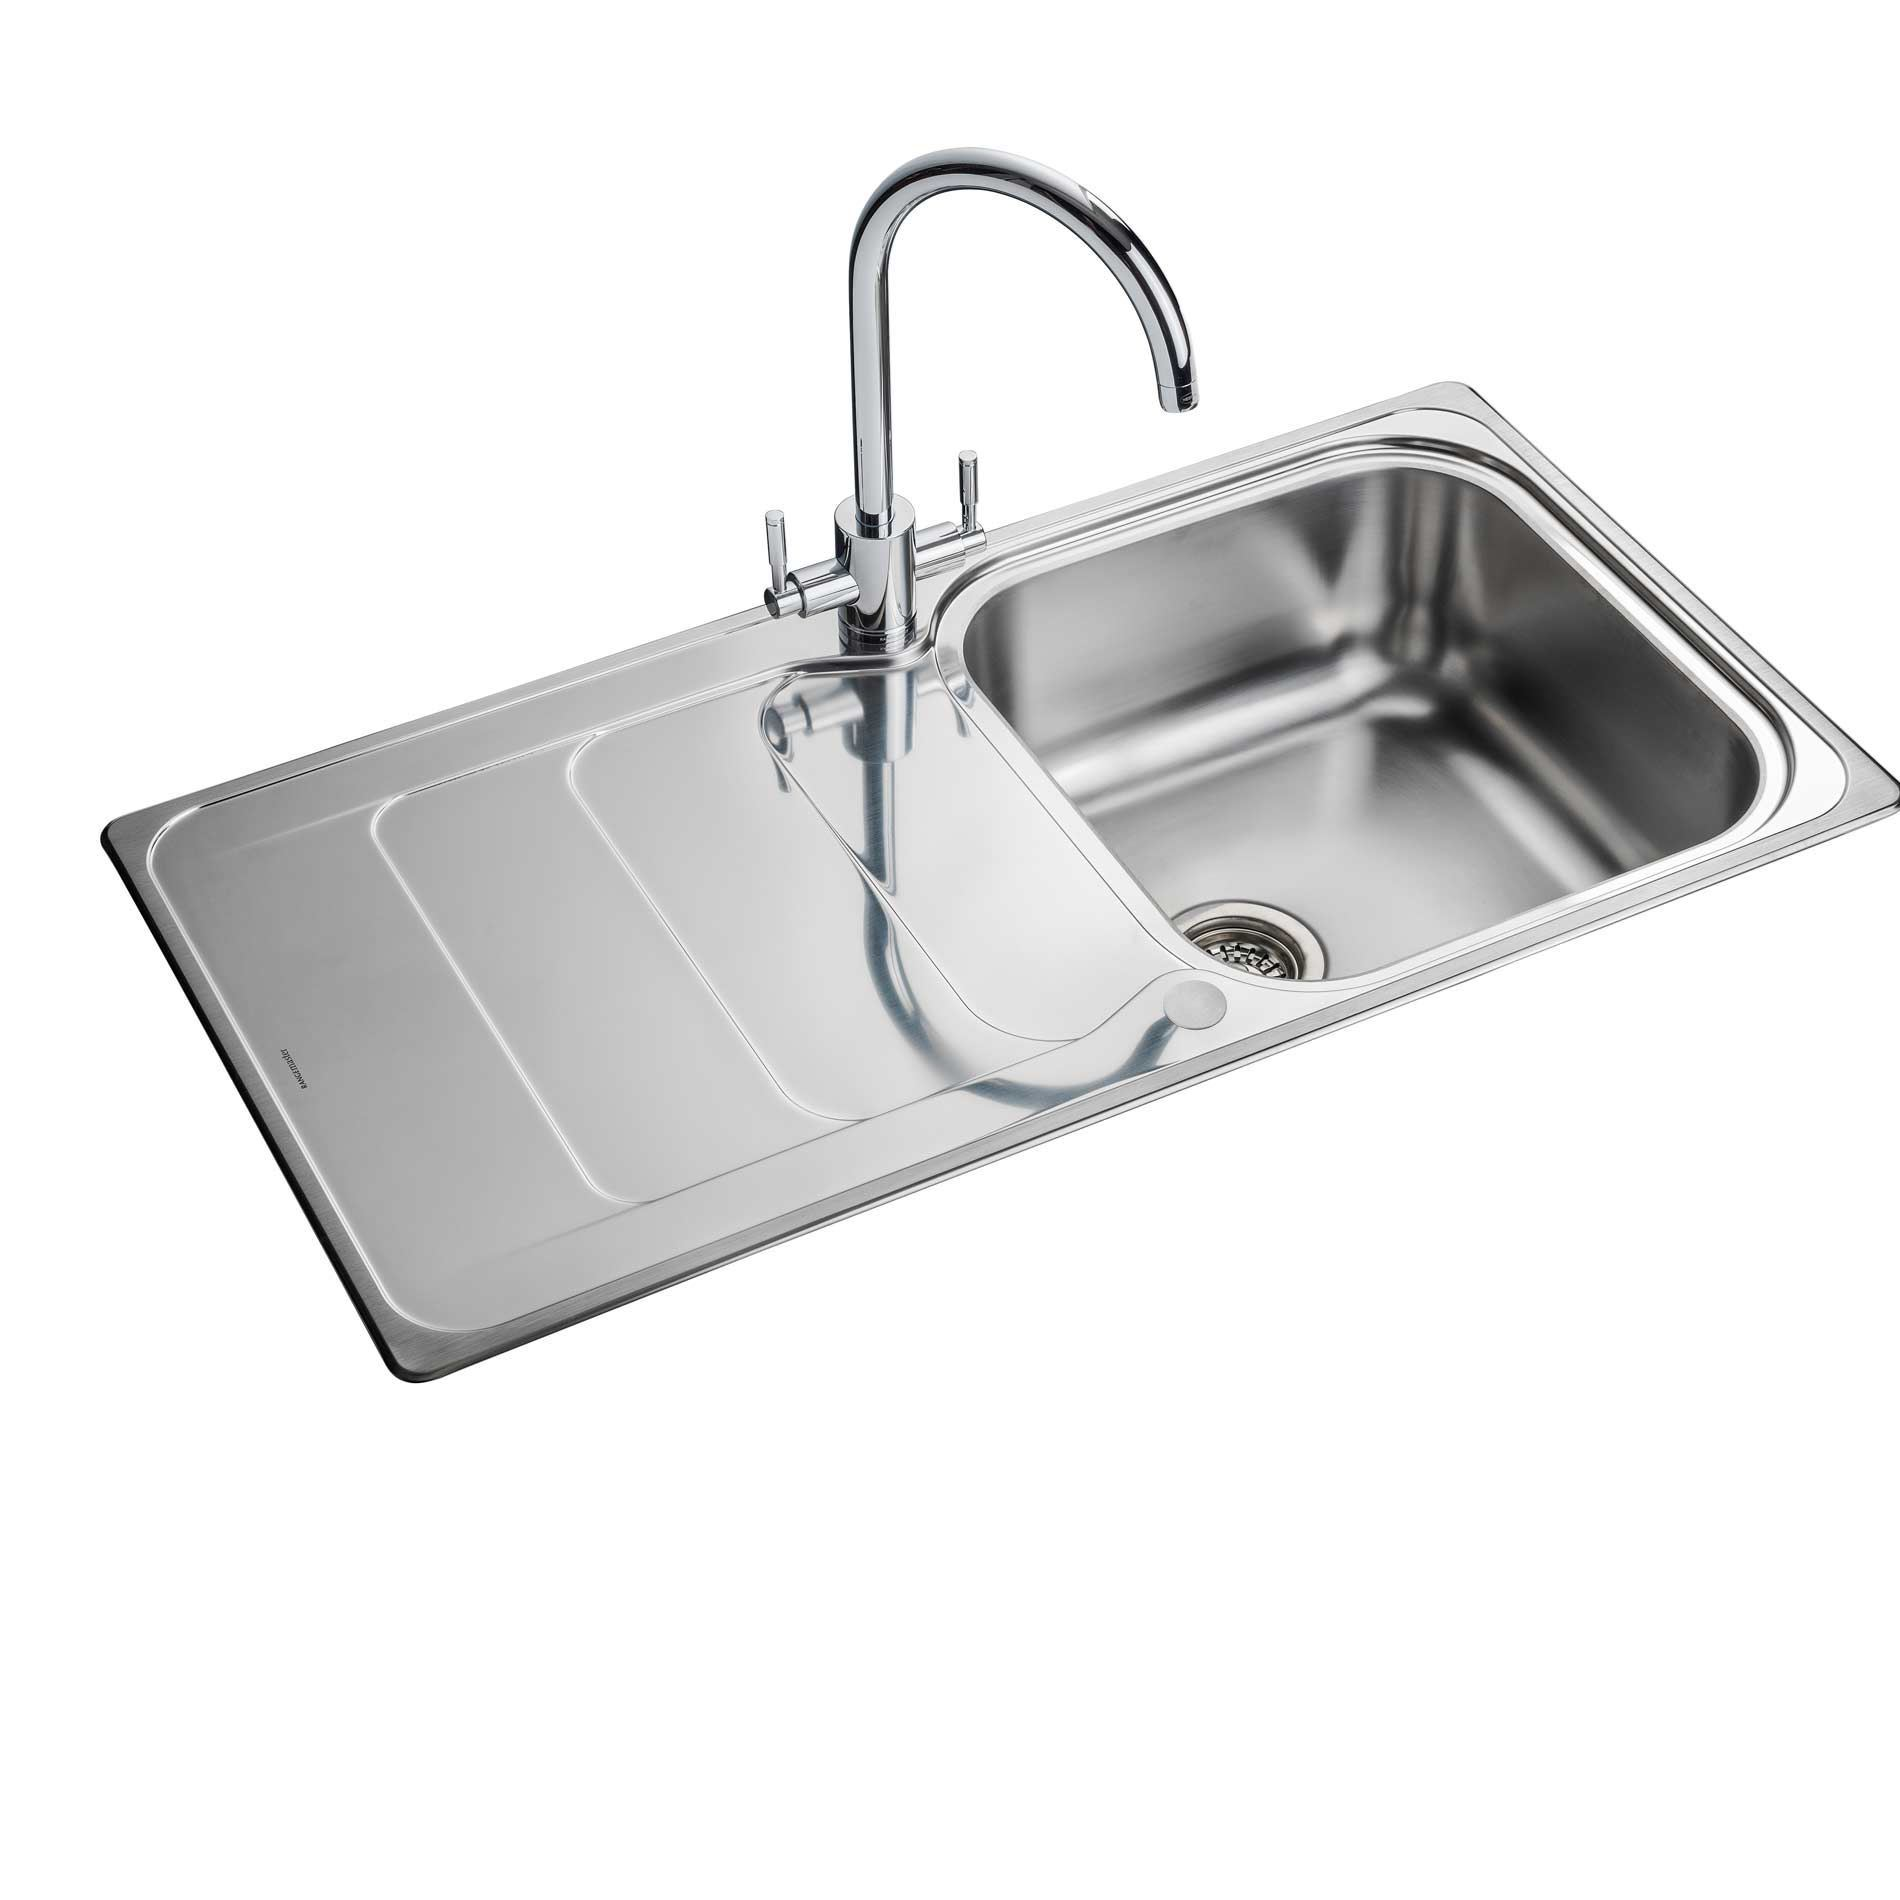 Rangemaster: Houston 1-0 HS9851 Stainless Steel Sink - Kitchen ...